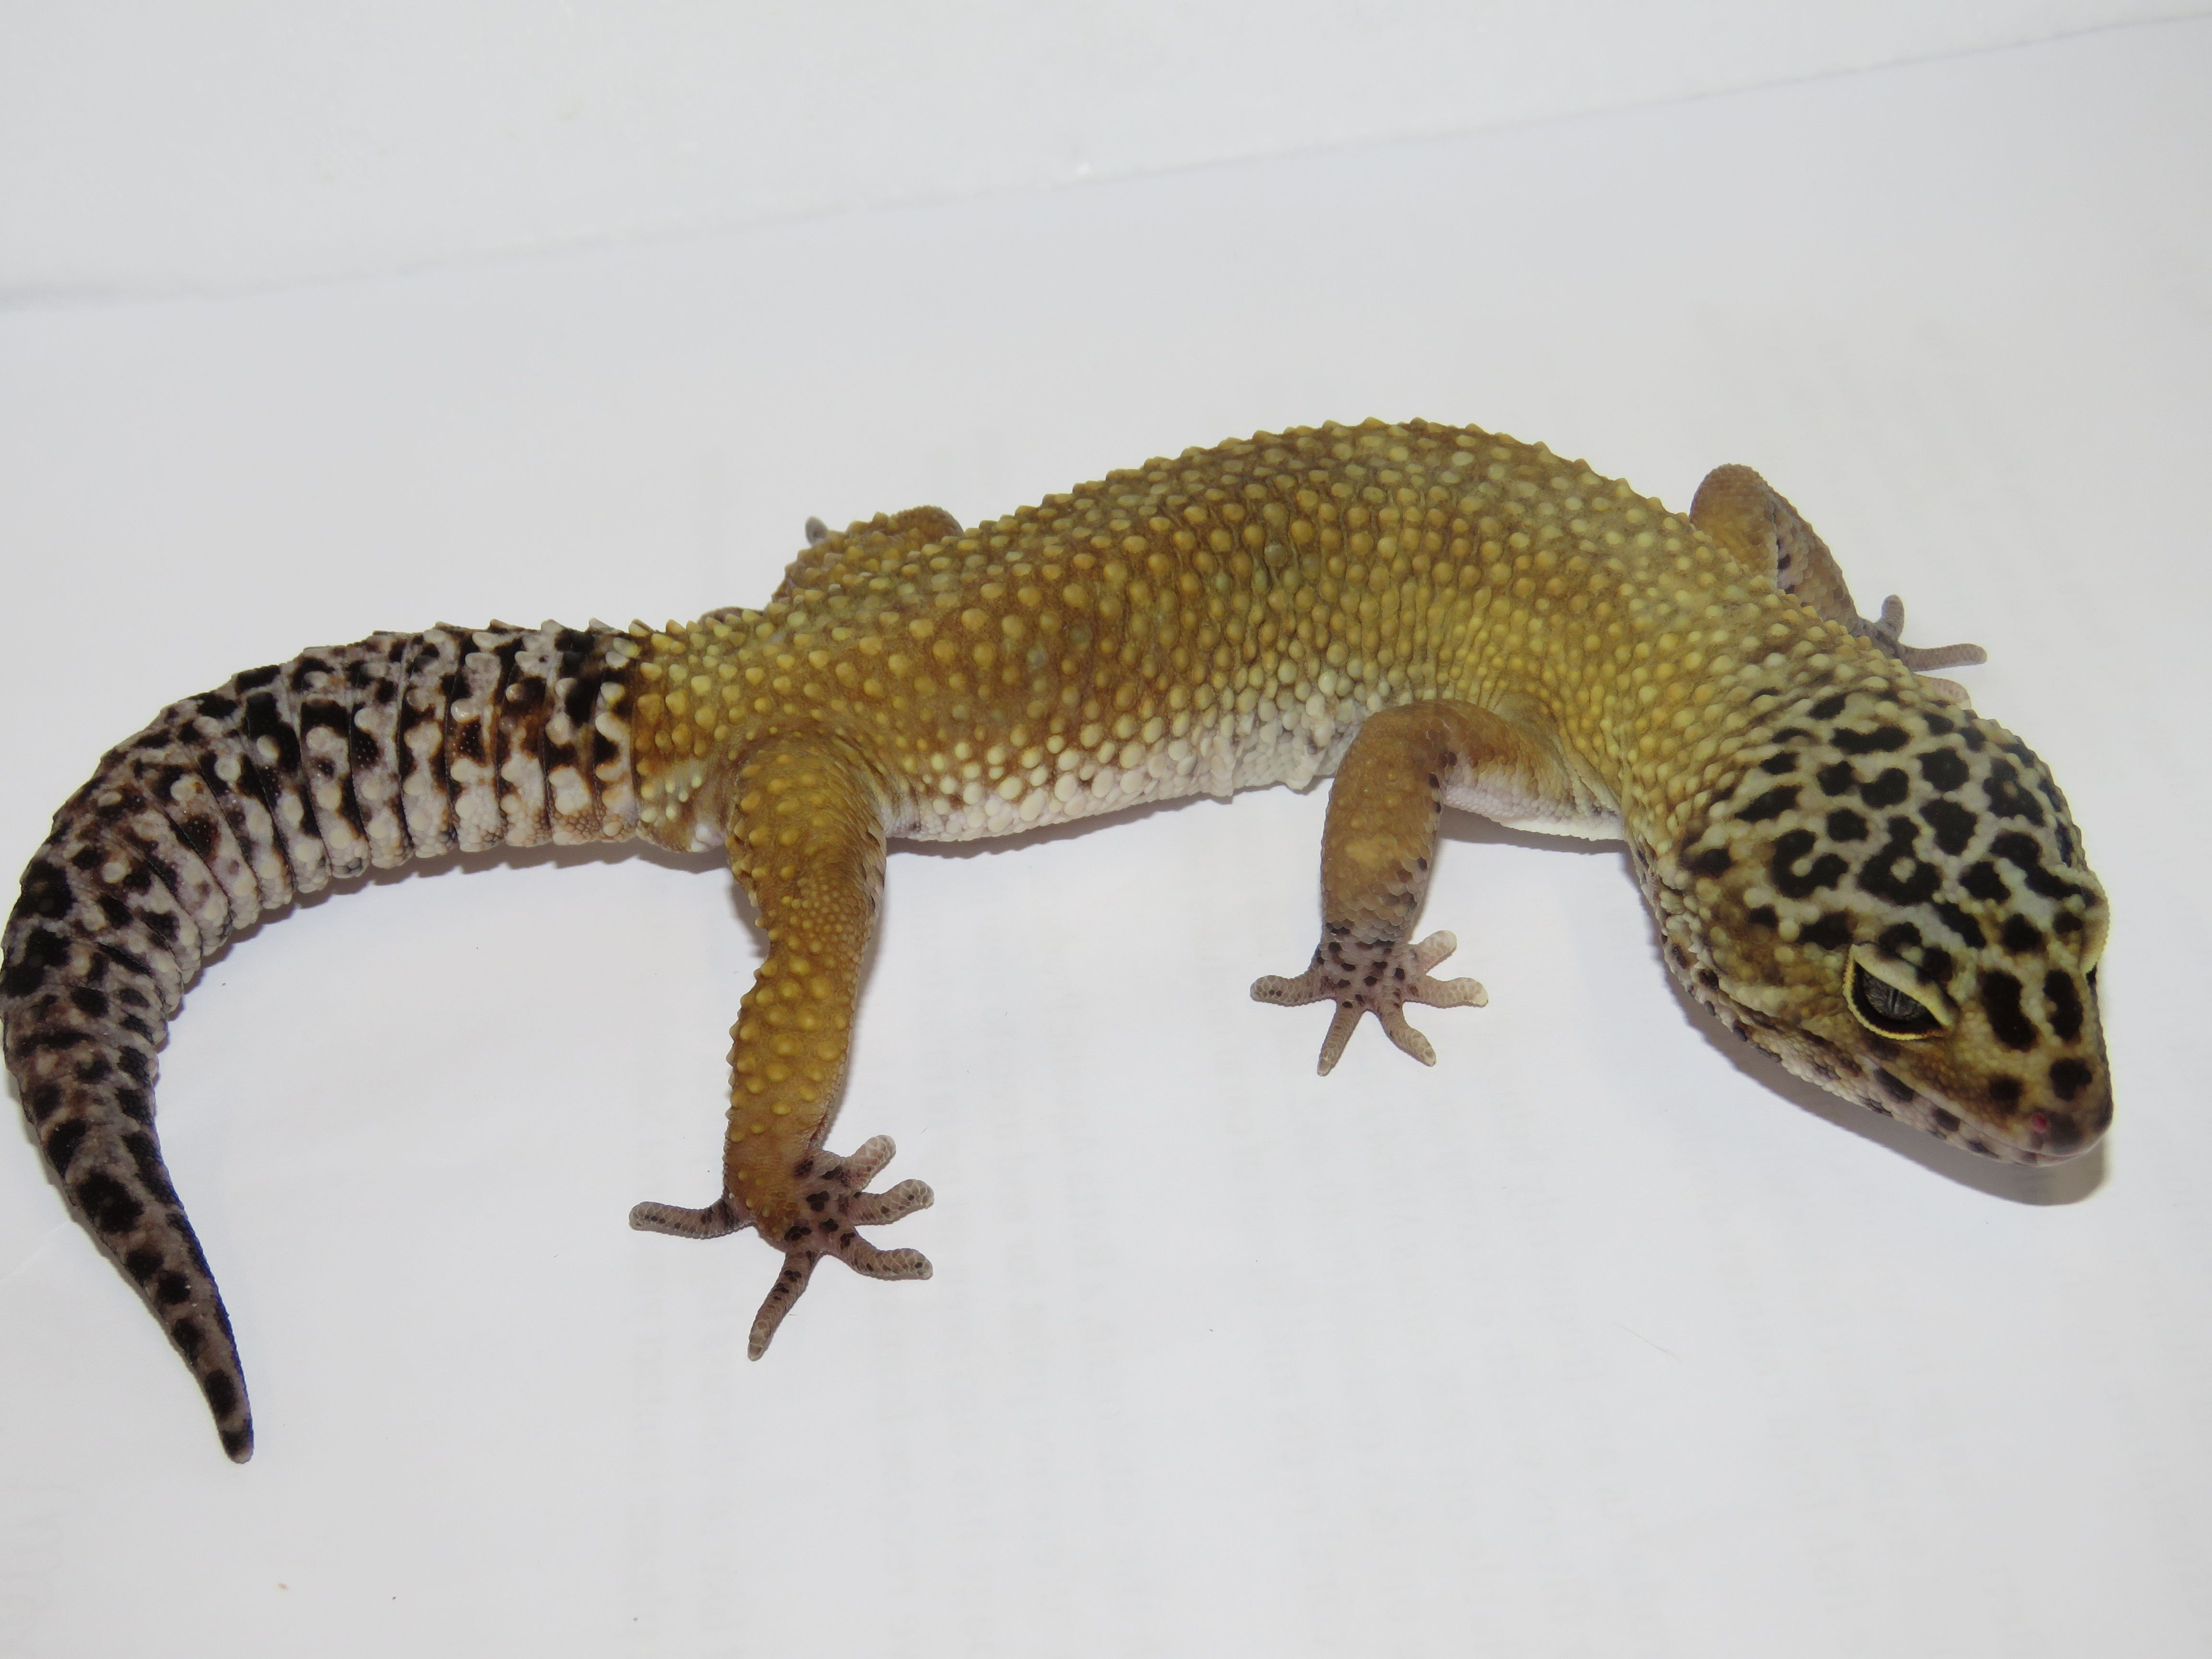 Leopard Gecko Www Naturalworldpets Co Uk If You Are Interested